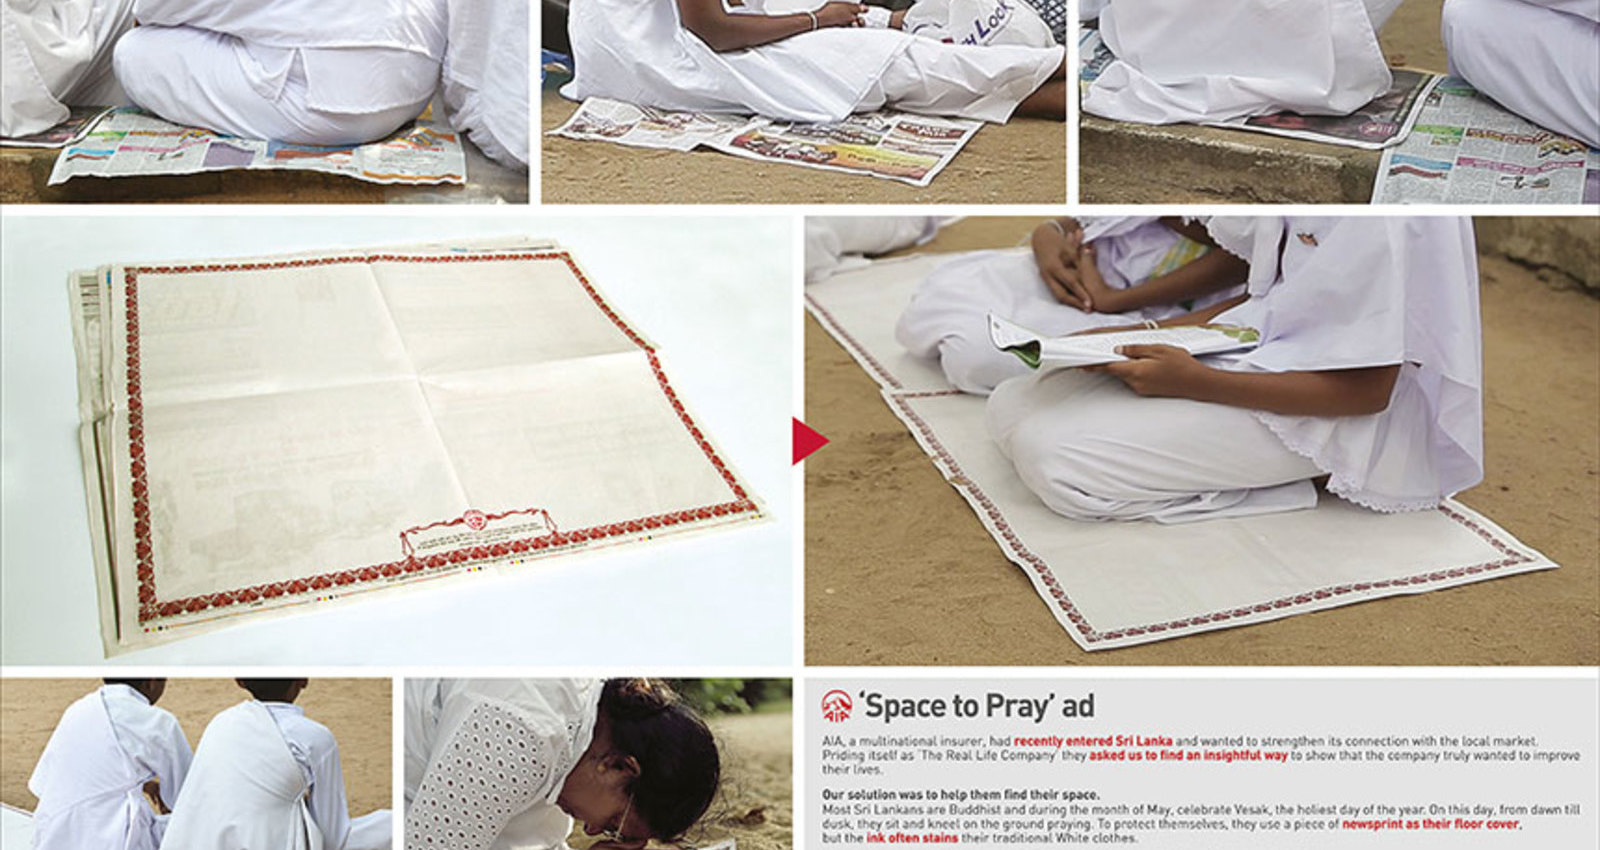 AIA SPACE TO PRAY AD